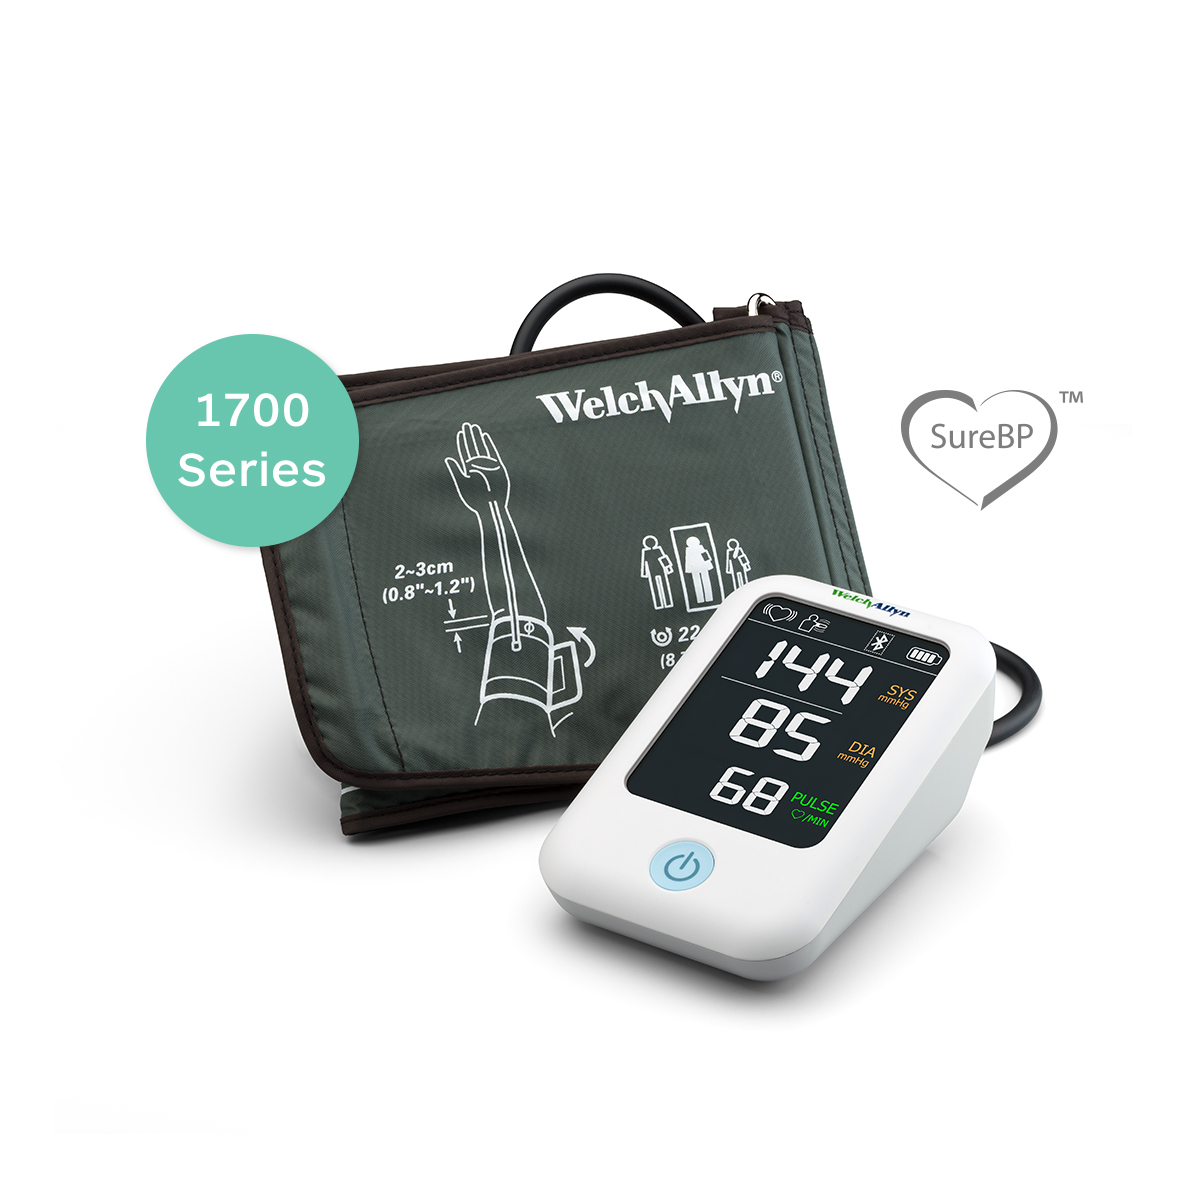 Welch Allyn Home Blood Pressure Monitor 1700 Series with SureBP® technology